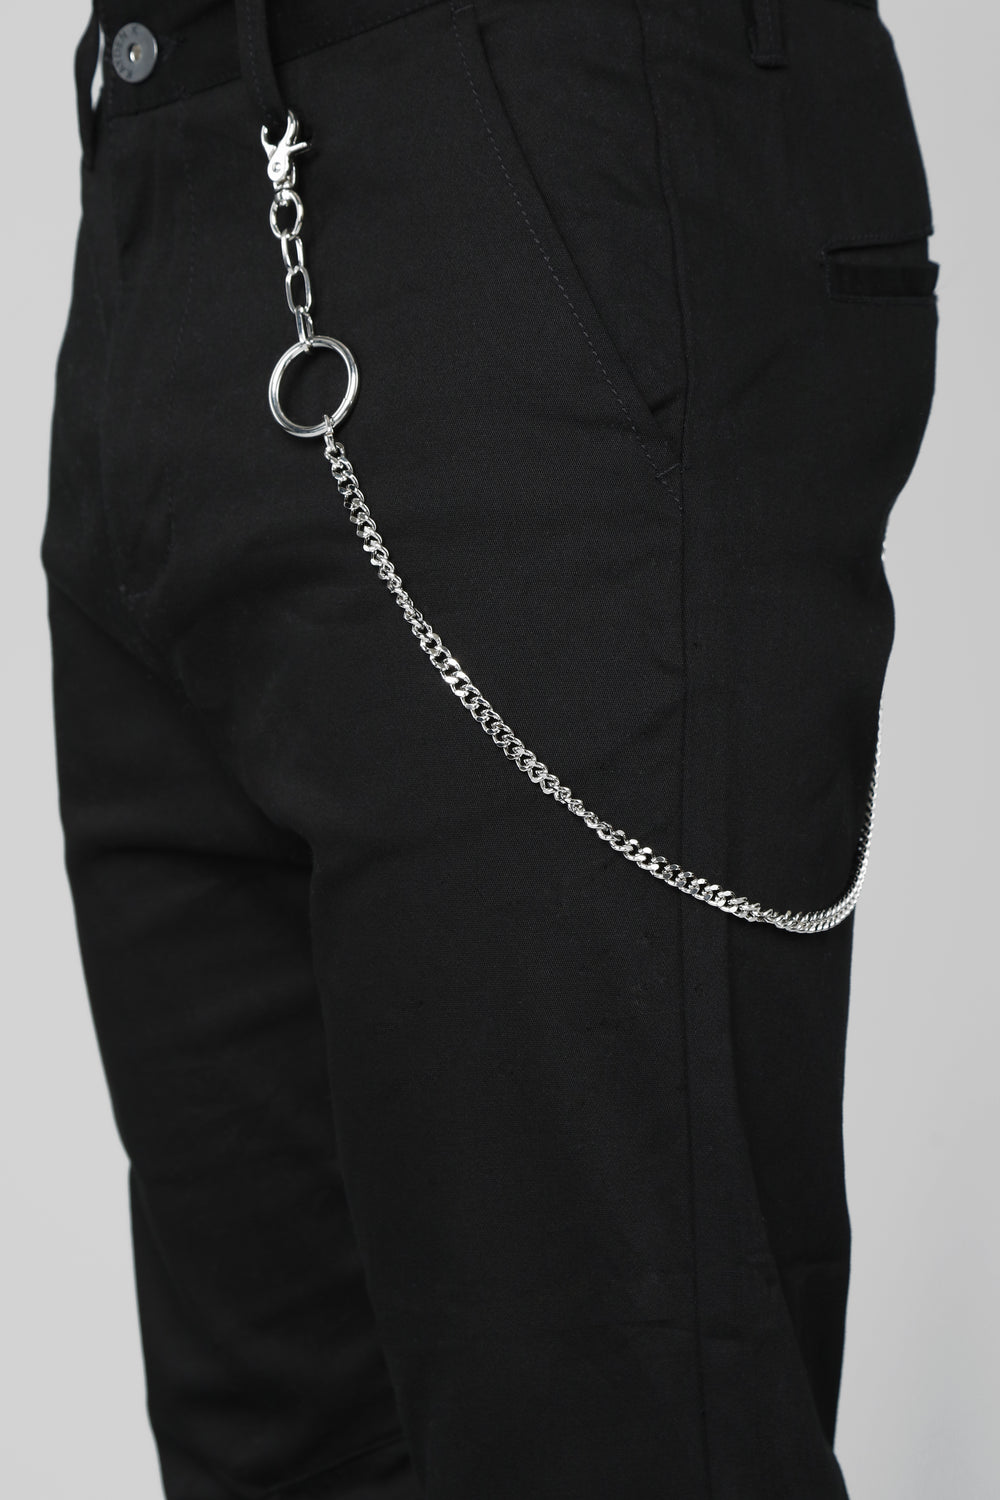 Henderson Pant Chain - Silver